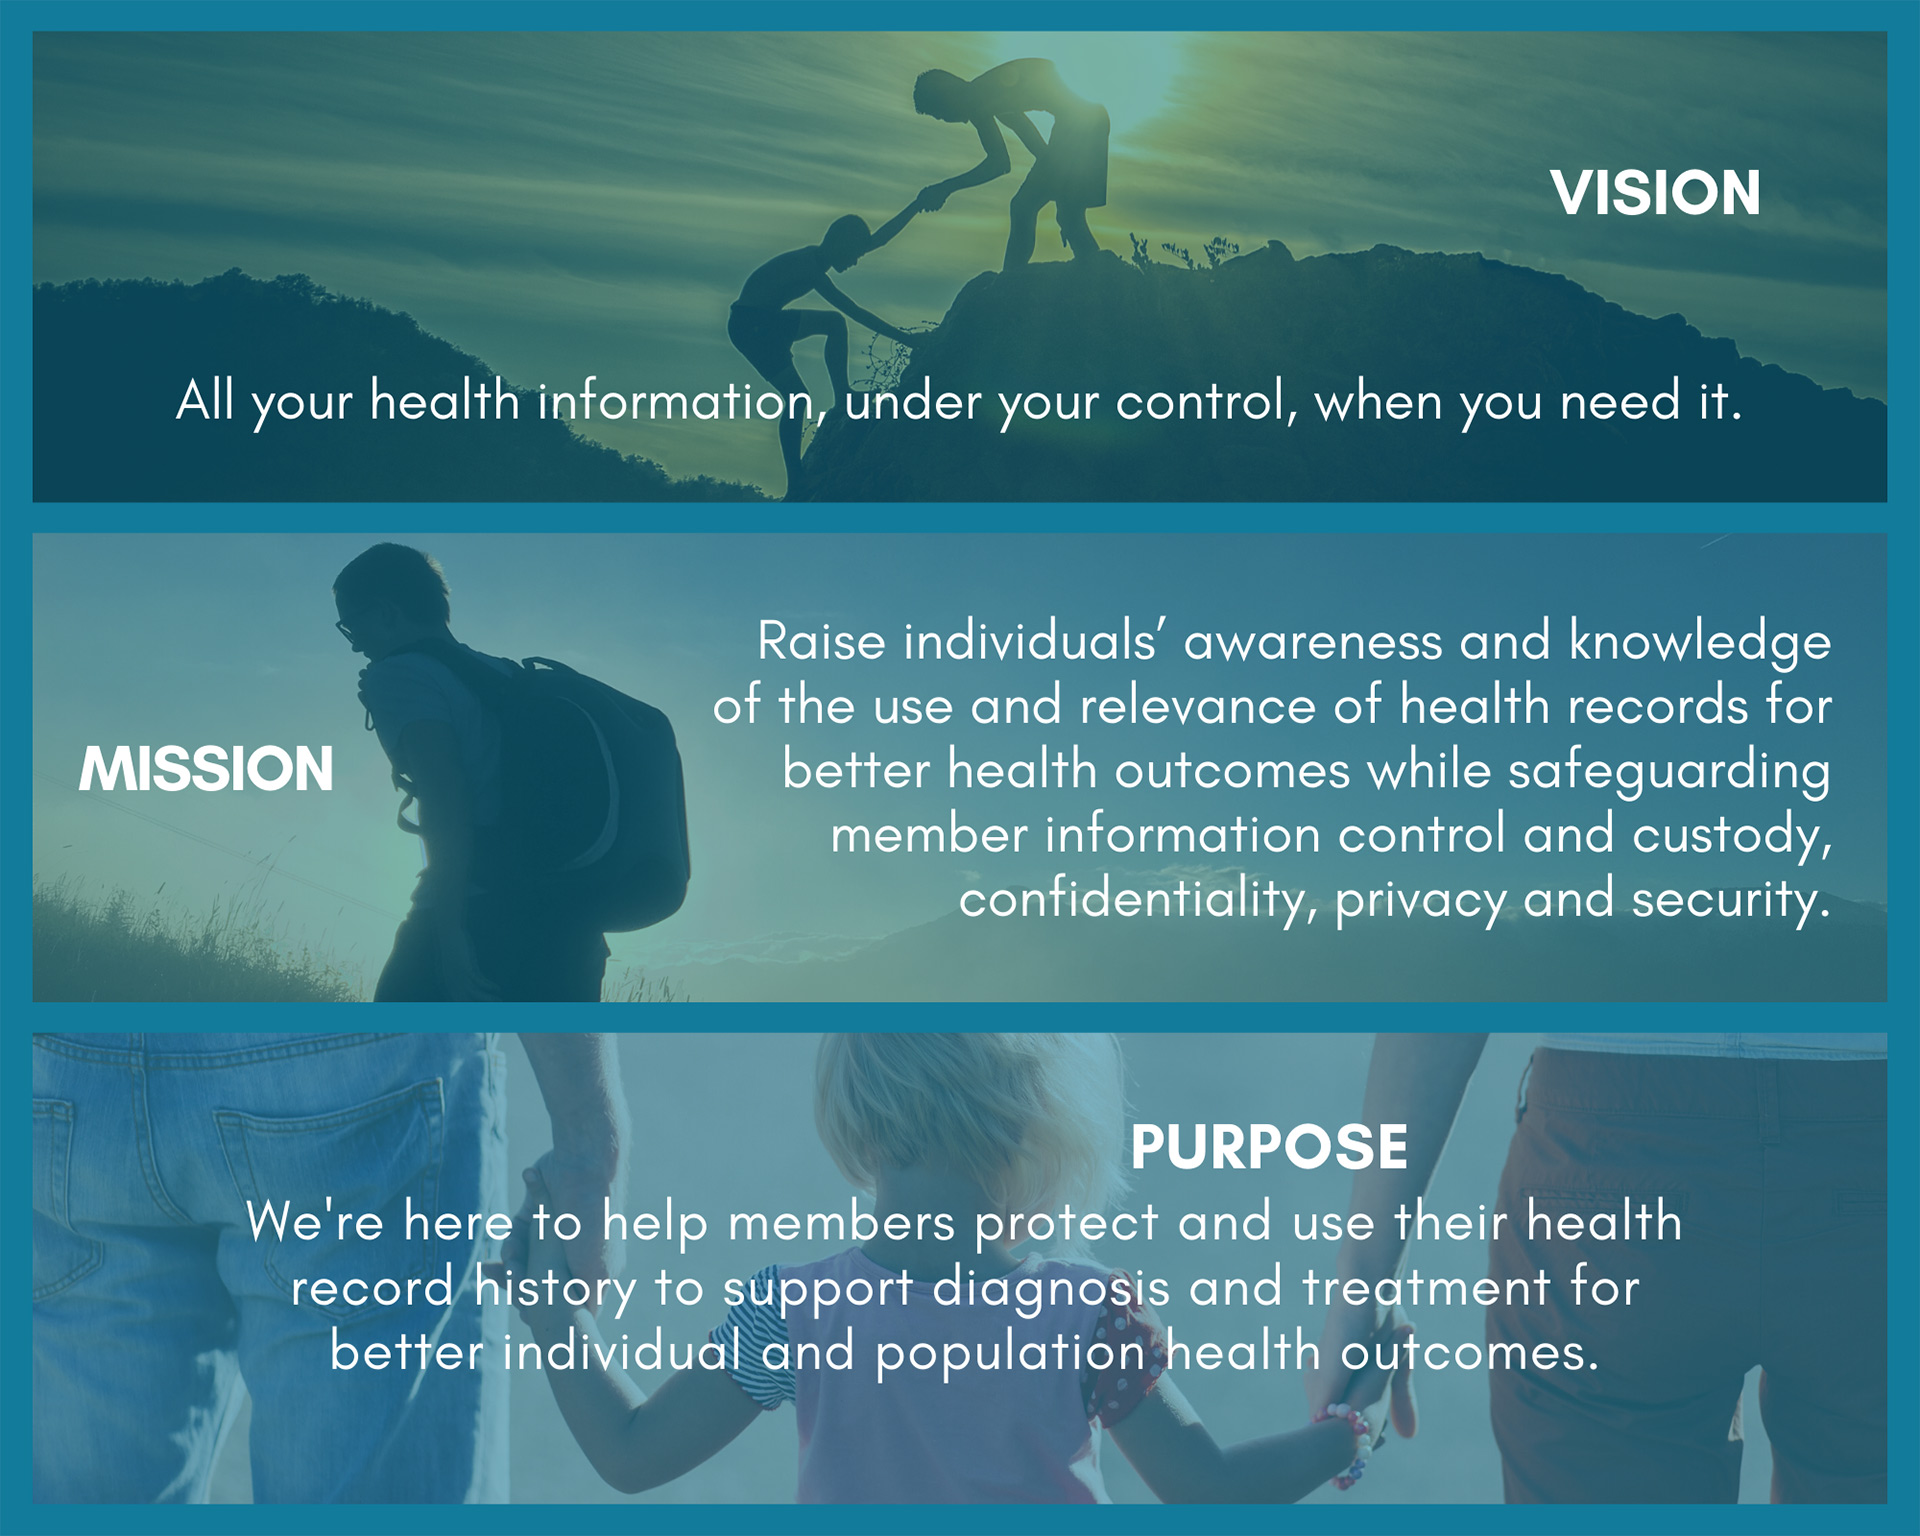 vision mission purpose